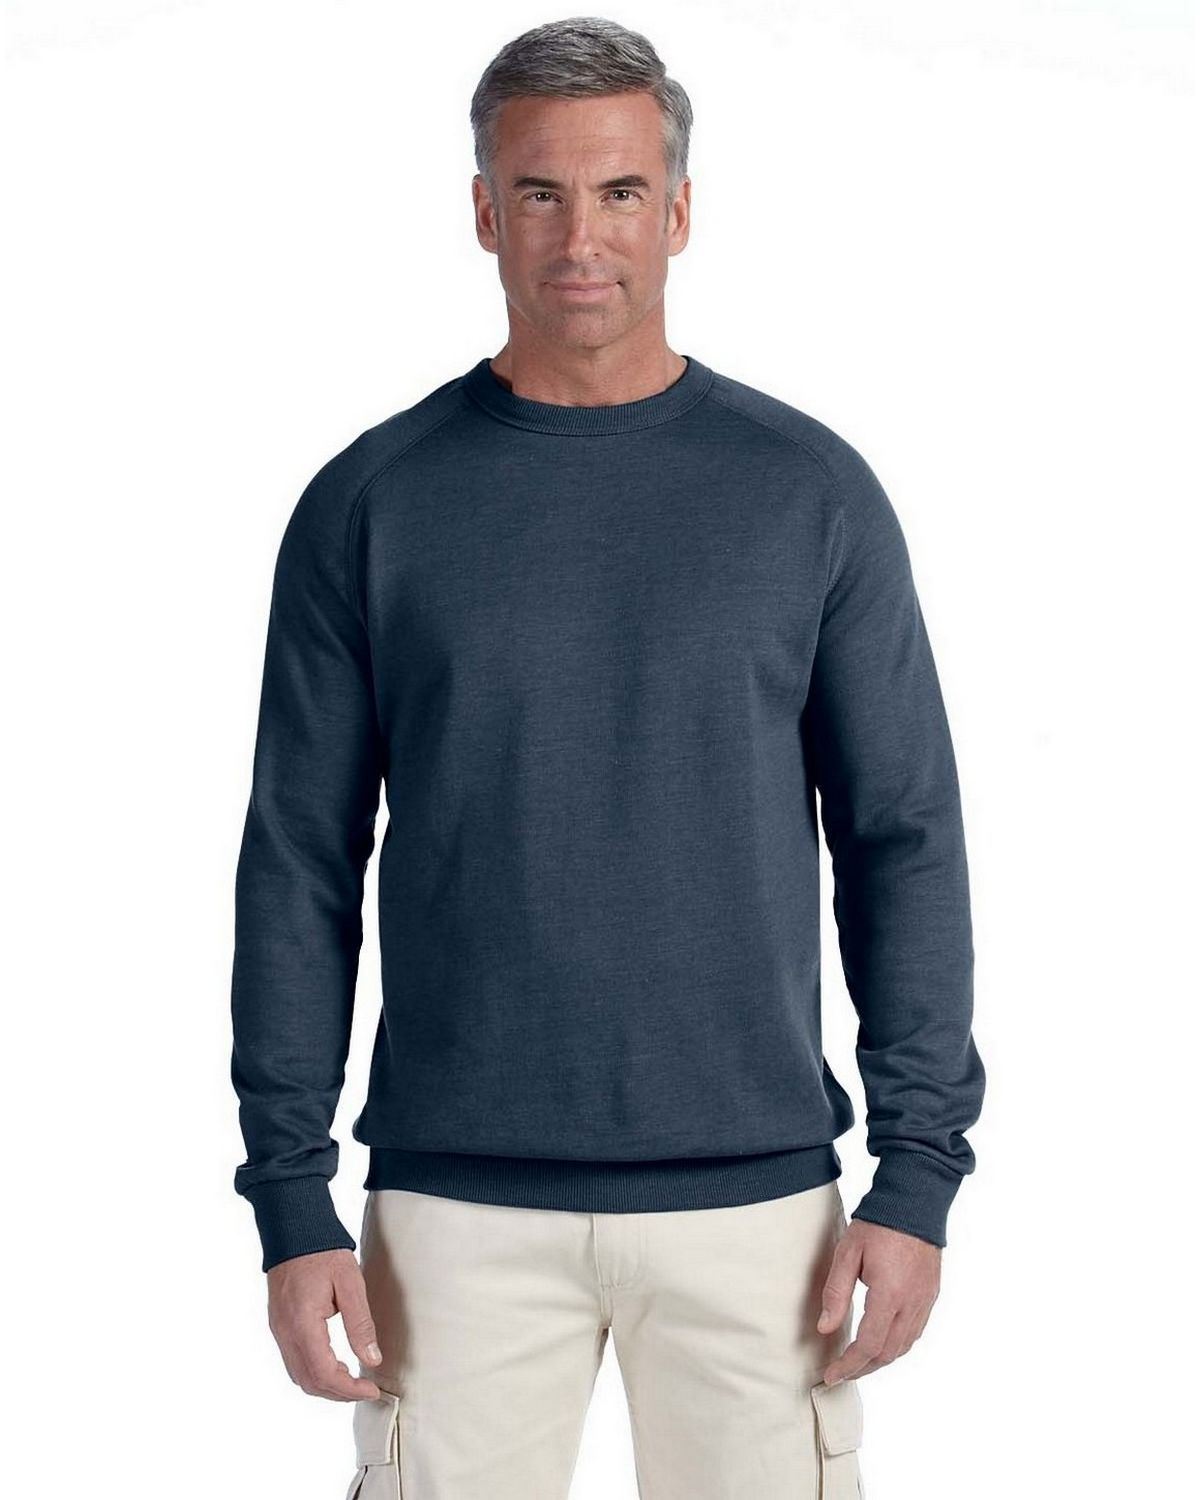 Econscious EC5050 Raglan Pullover - Athletic Grey - S EC5050